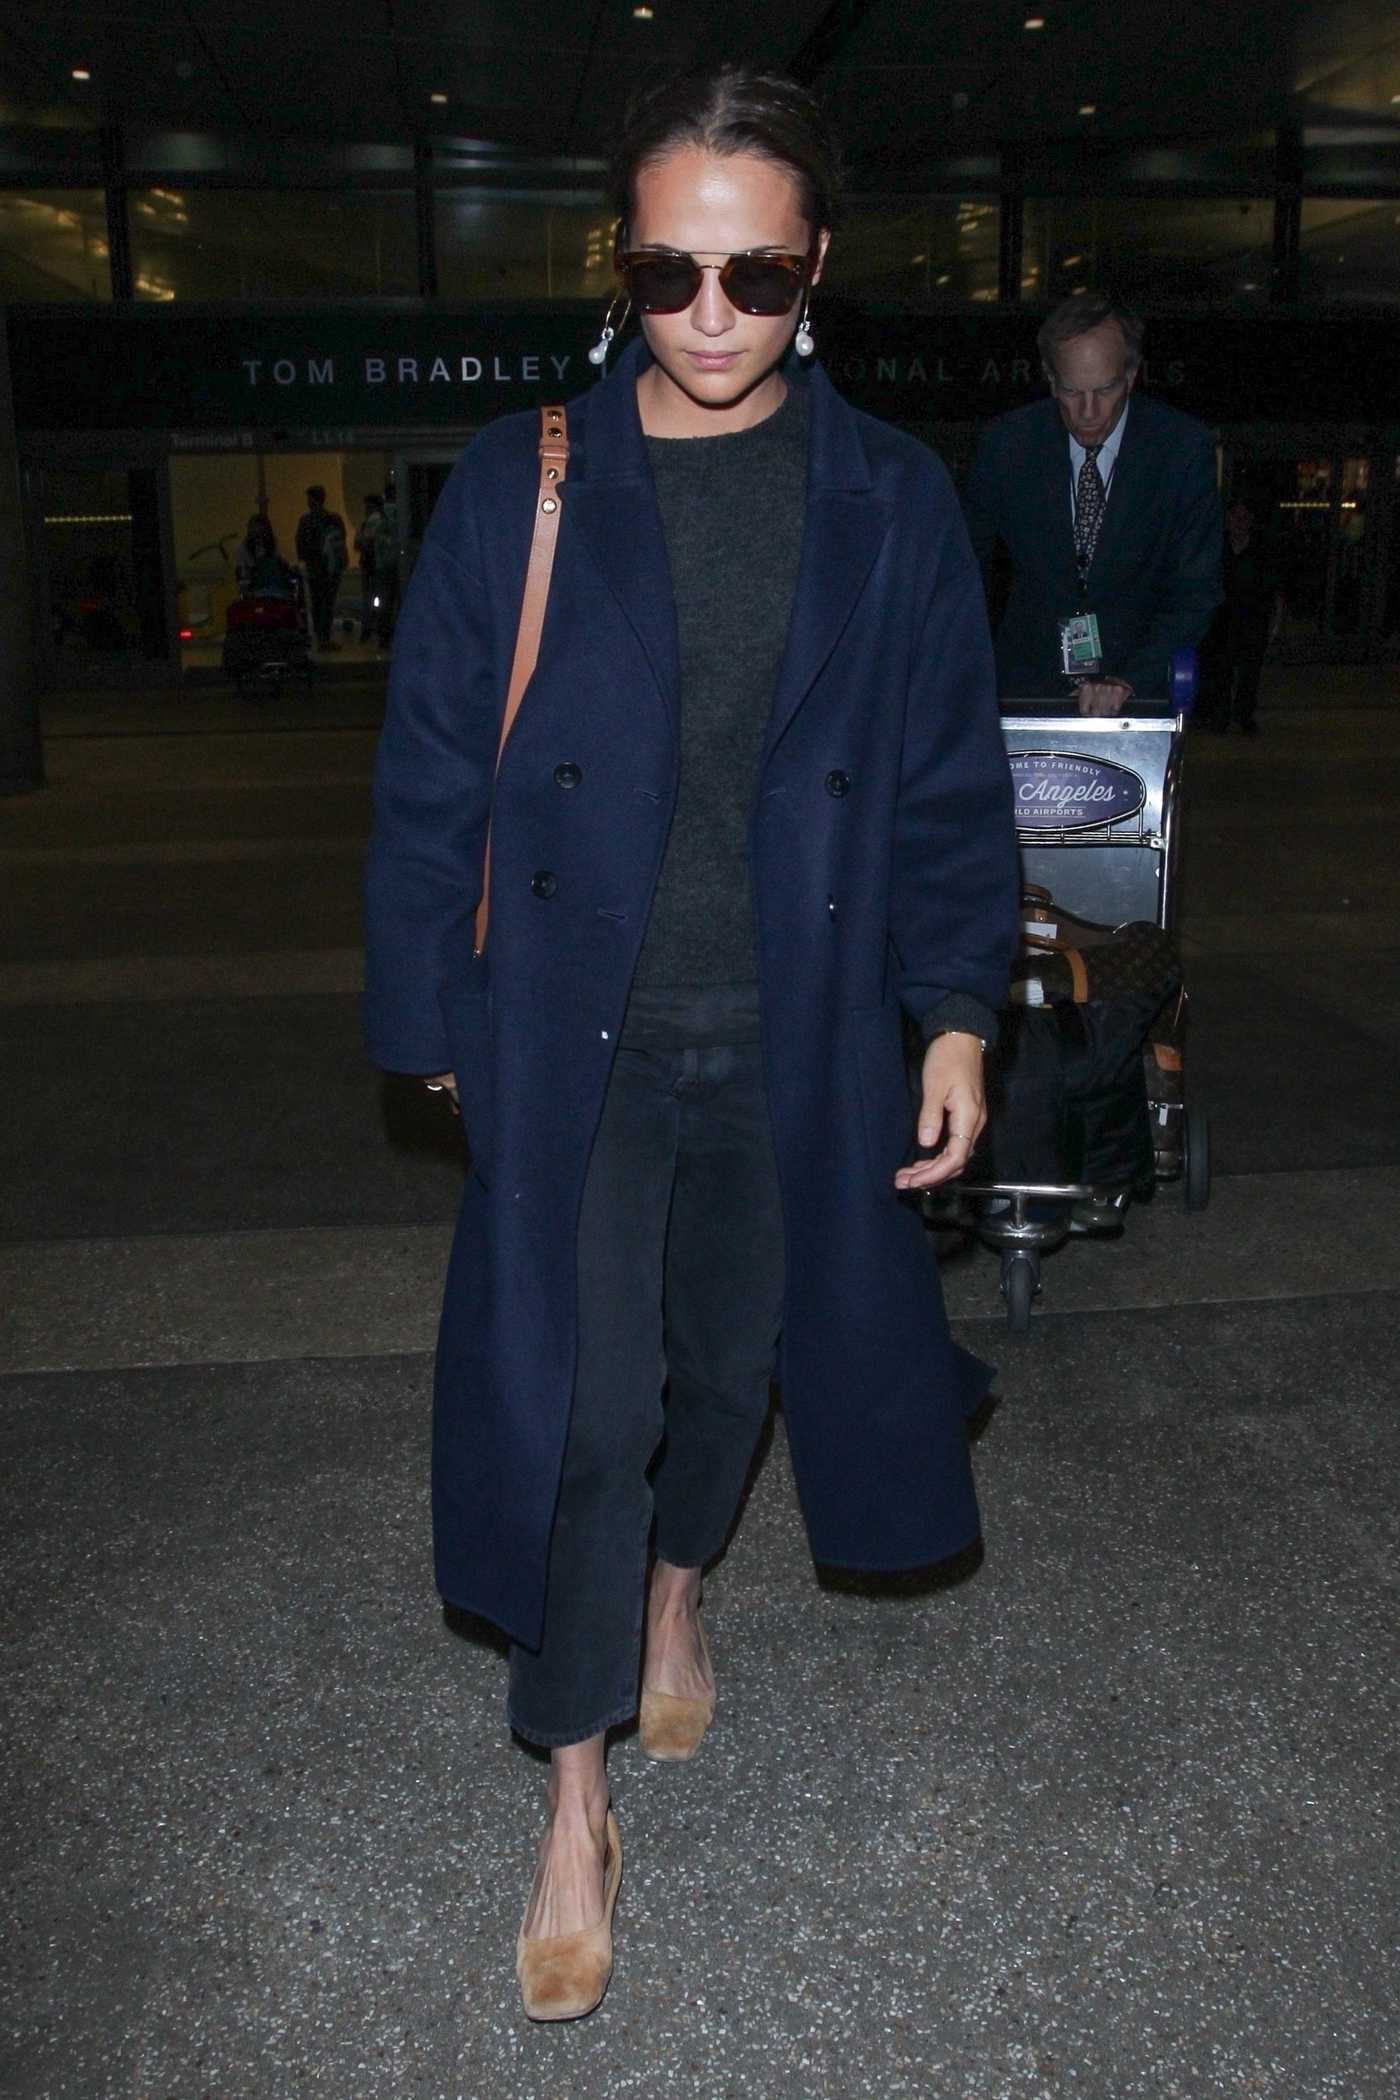 Alicia Vikander in a Dark Blue Coat Arrives at LAX Airport in Los Angeles 10/19/2018